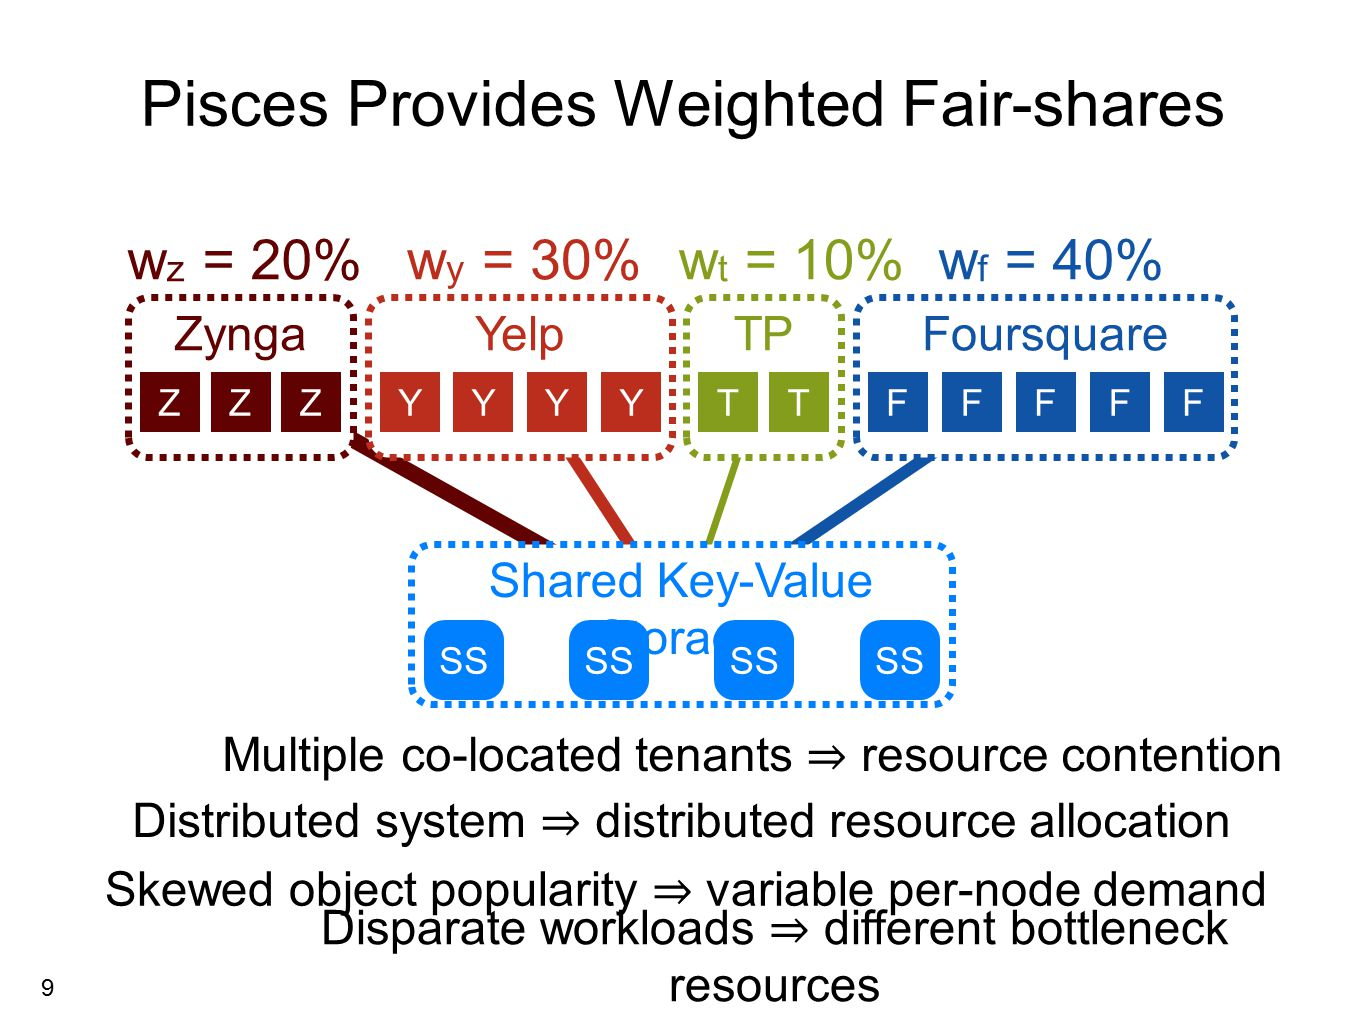 9 ZyngaYelpFoursquareTP Shared Key-Value Storage Pisces Provides Weighted Fair-shares w z = 20%w y = 30%w f = 40%w t = 10% demand z = 30% rate z = 30% demand f = 30% ZYTFZYFTYYZFFF Max-min fair share ⇒ lower bound on system performance rate f = 30% SS Skewed object popularity ⇒ variable per-node demand Multiple co-located tenants ⇒ resource contention Distributed system ⇒ distributed resource allocation Disparate workloads ⇒ different bottleneck resources